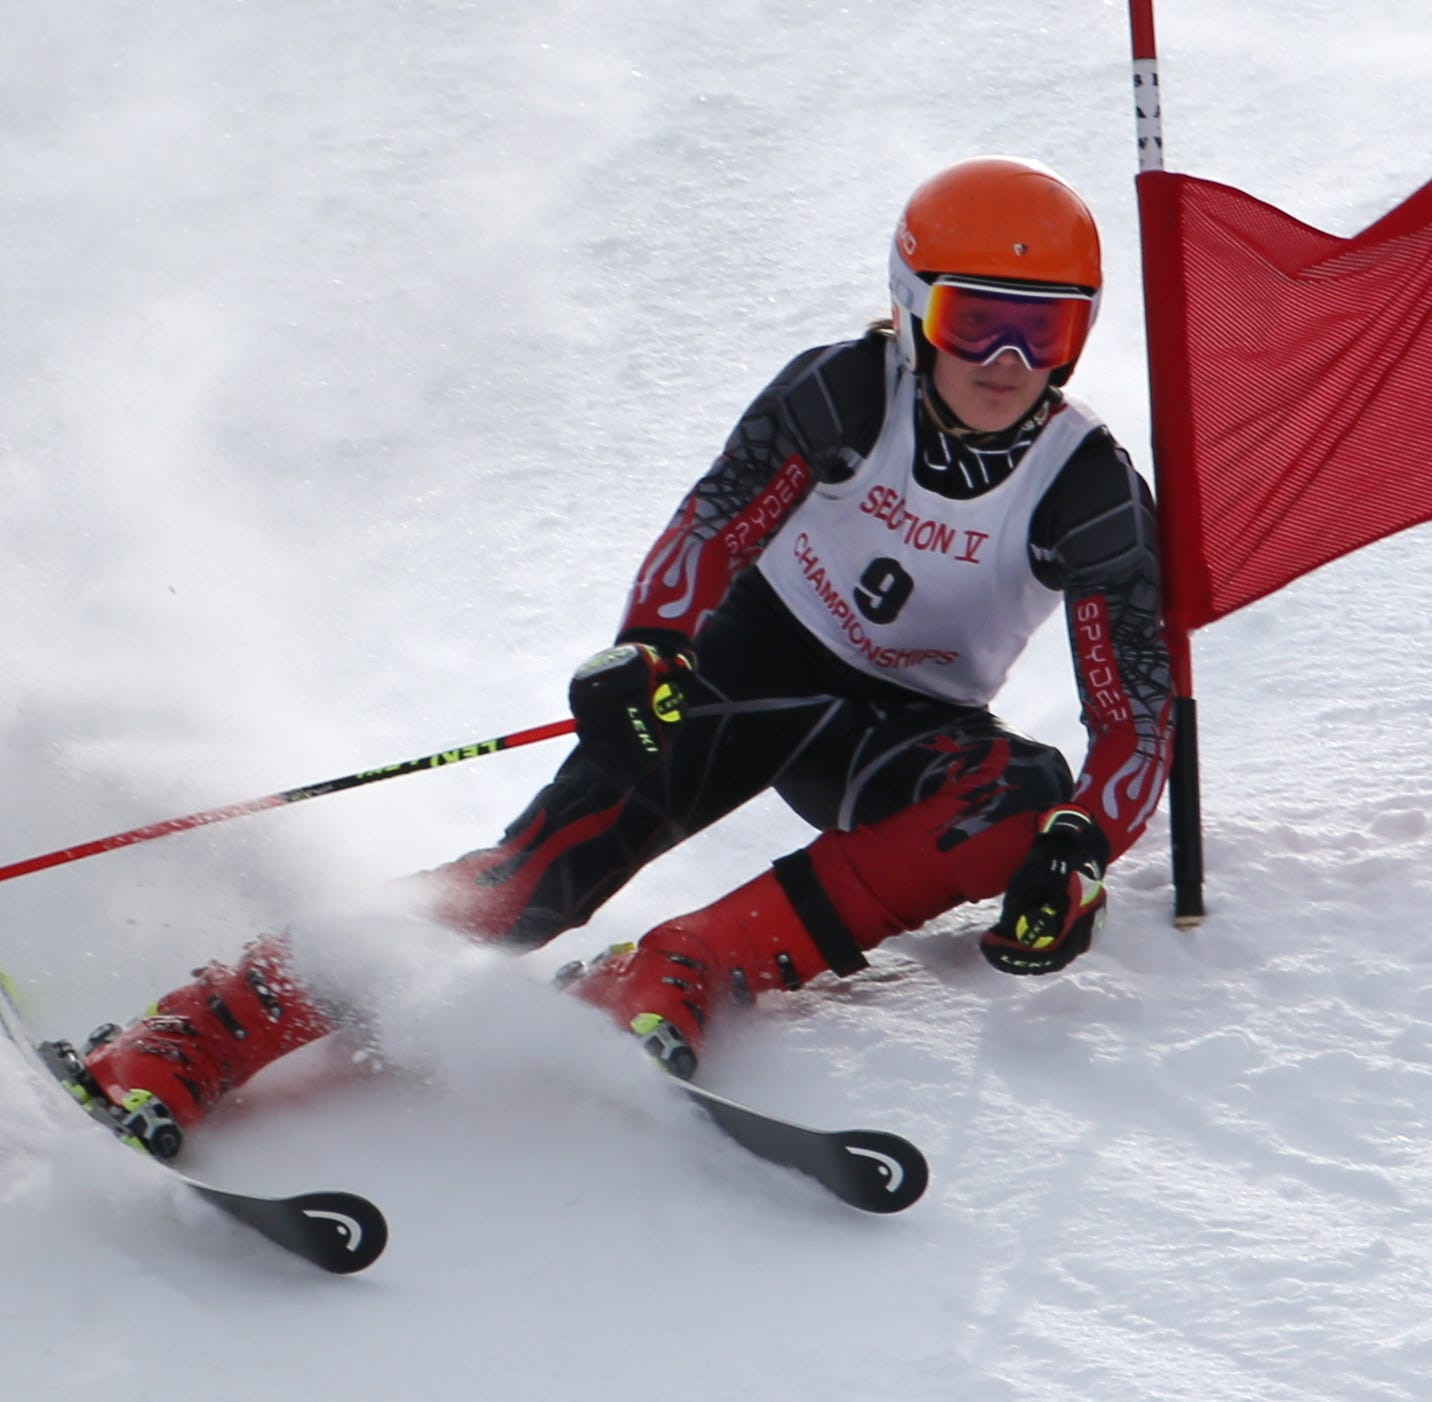 Spin Blazak of Canandaigua competes in the boys Alpine Section V Championships at Swain. He recorded the top time in the giant slalom and the second-best time in the slalom to win the combined title.